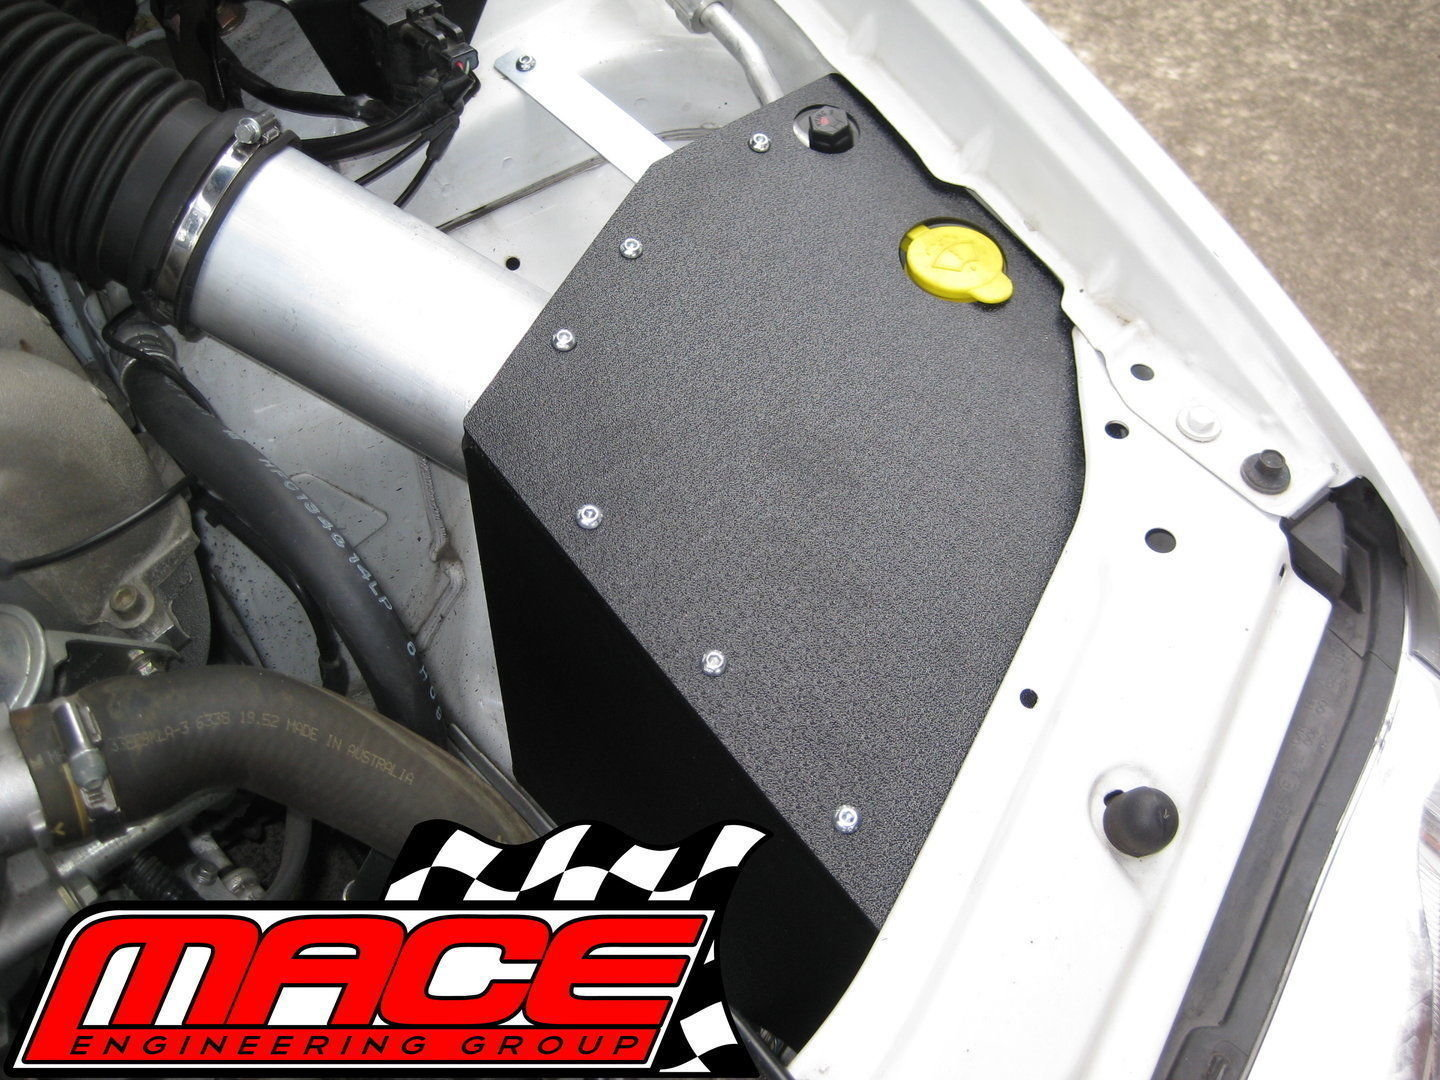 MACE COLD AIR INTAKE KIT TO SUIT FORD FALCON BA BF BARRA 182 190 240T 245T  TURBO E-GAS 4 0L I6